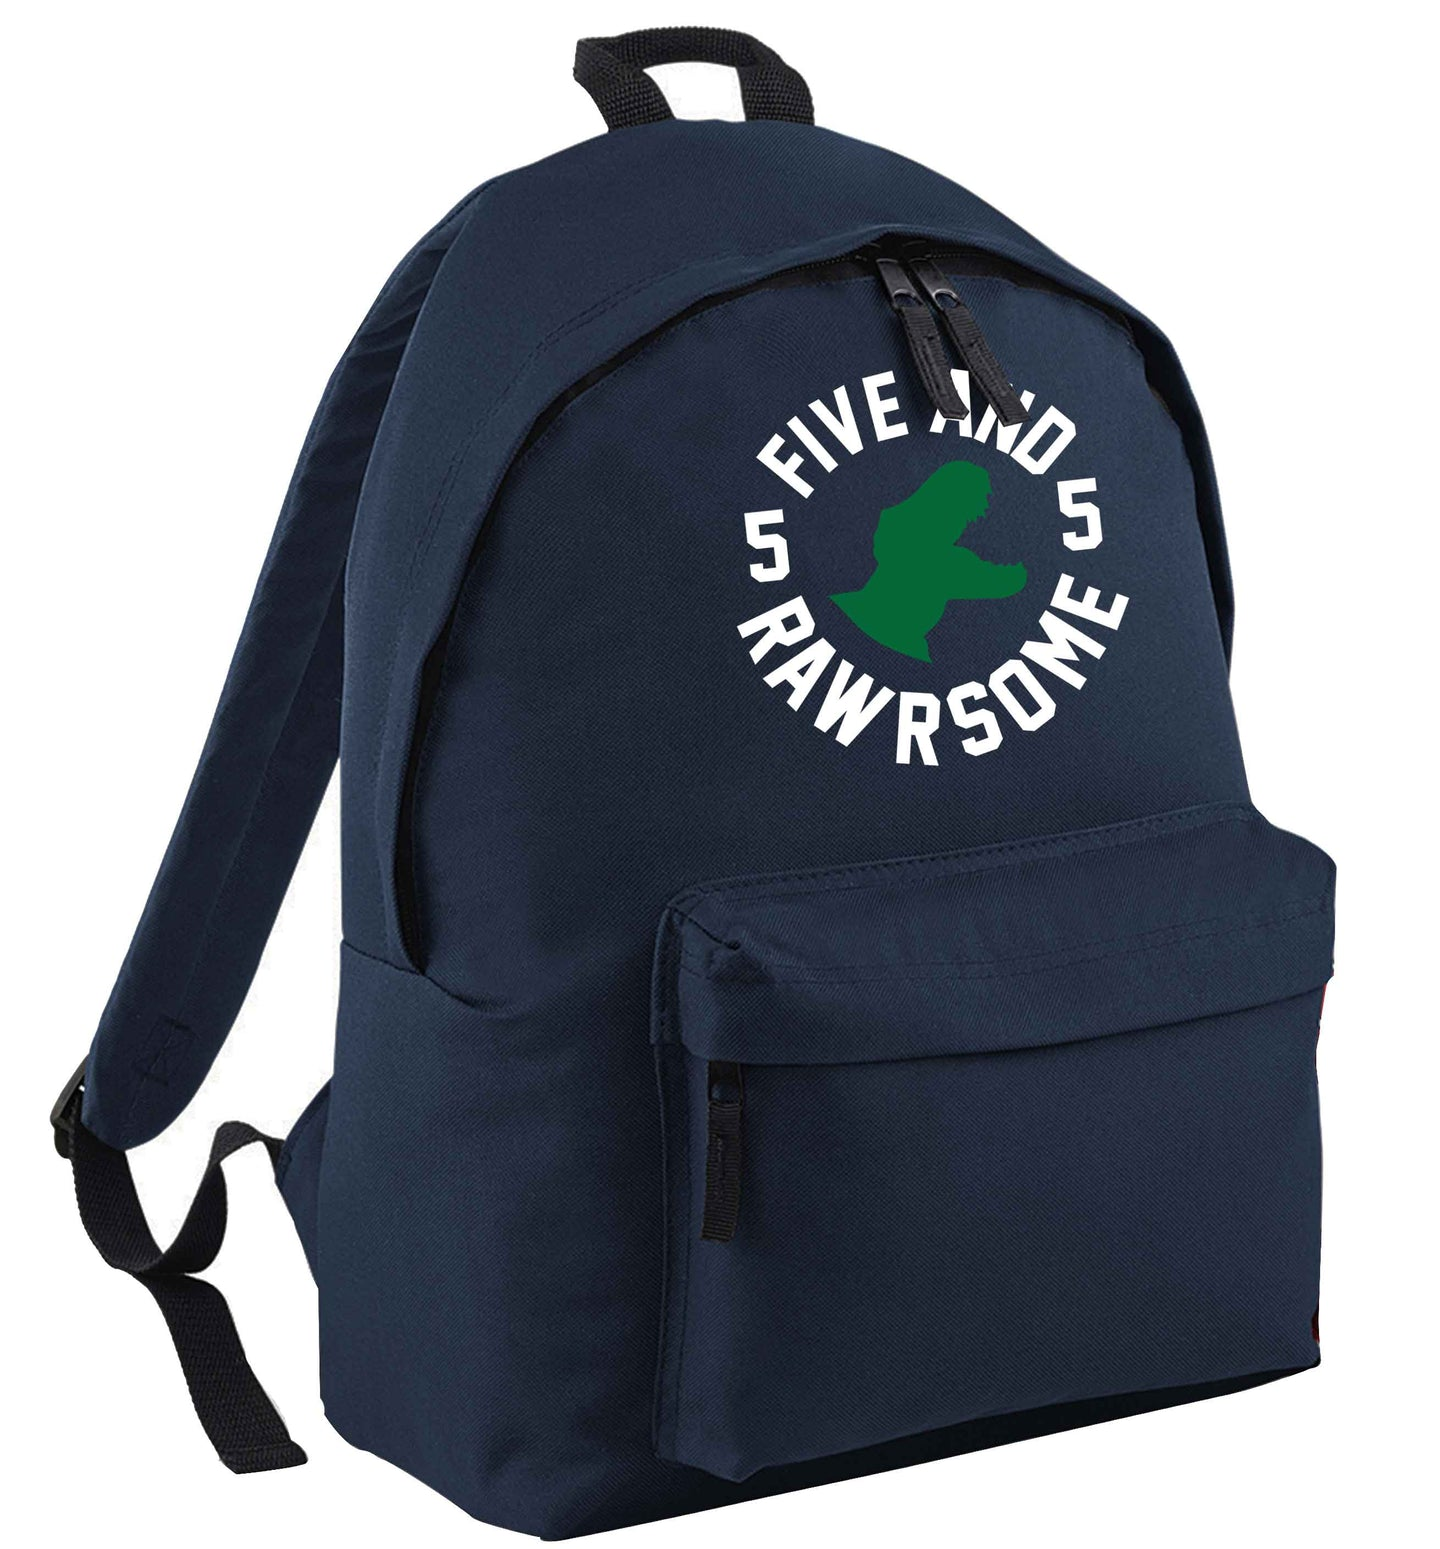 Five and rawrsome navy childrens backpack